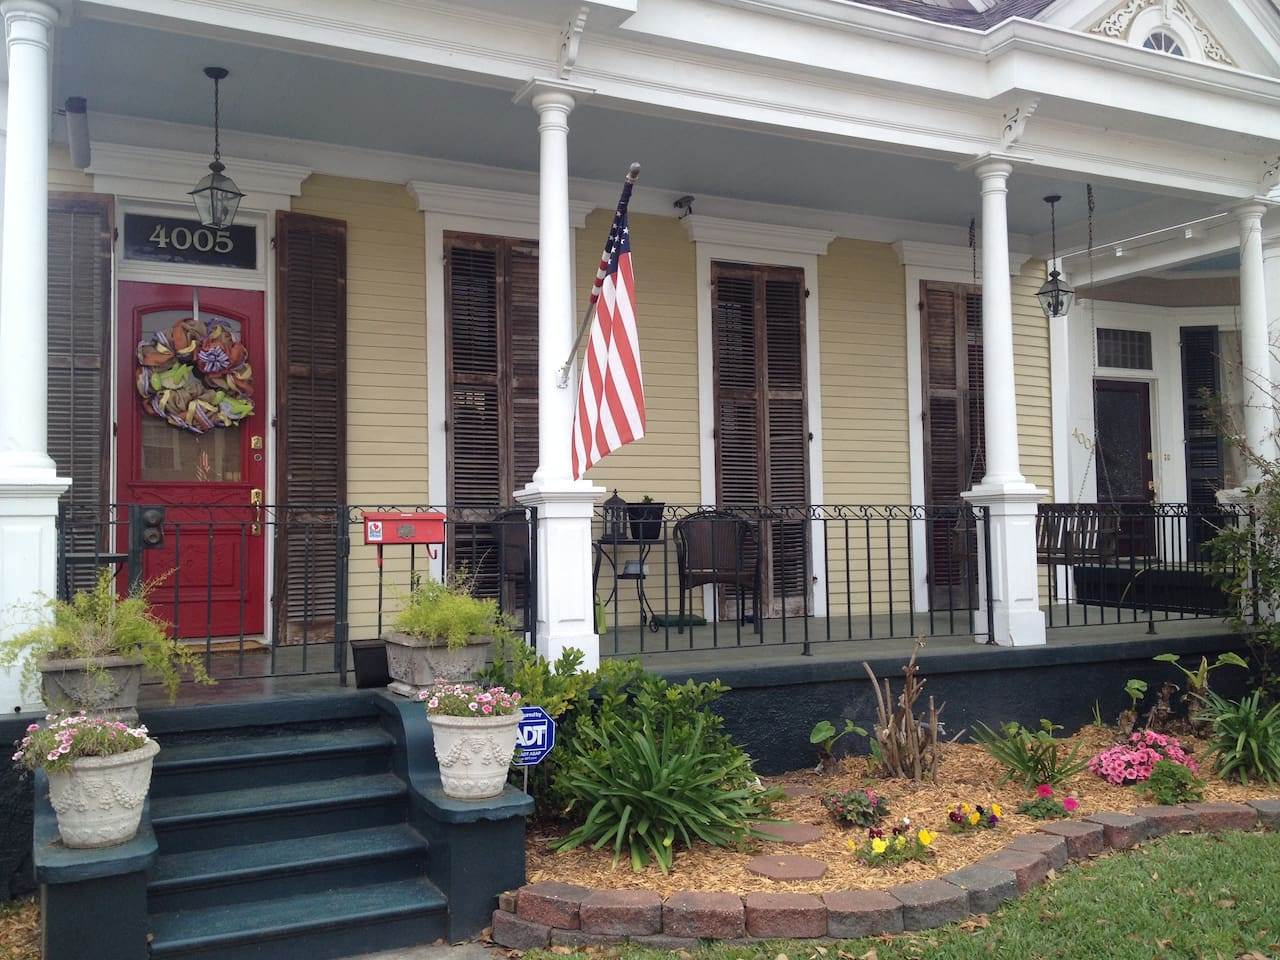 The front of our home; built in 1905.  The apartment is in the rear of the home with a separate entrance.